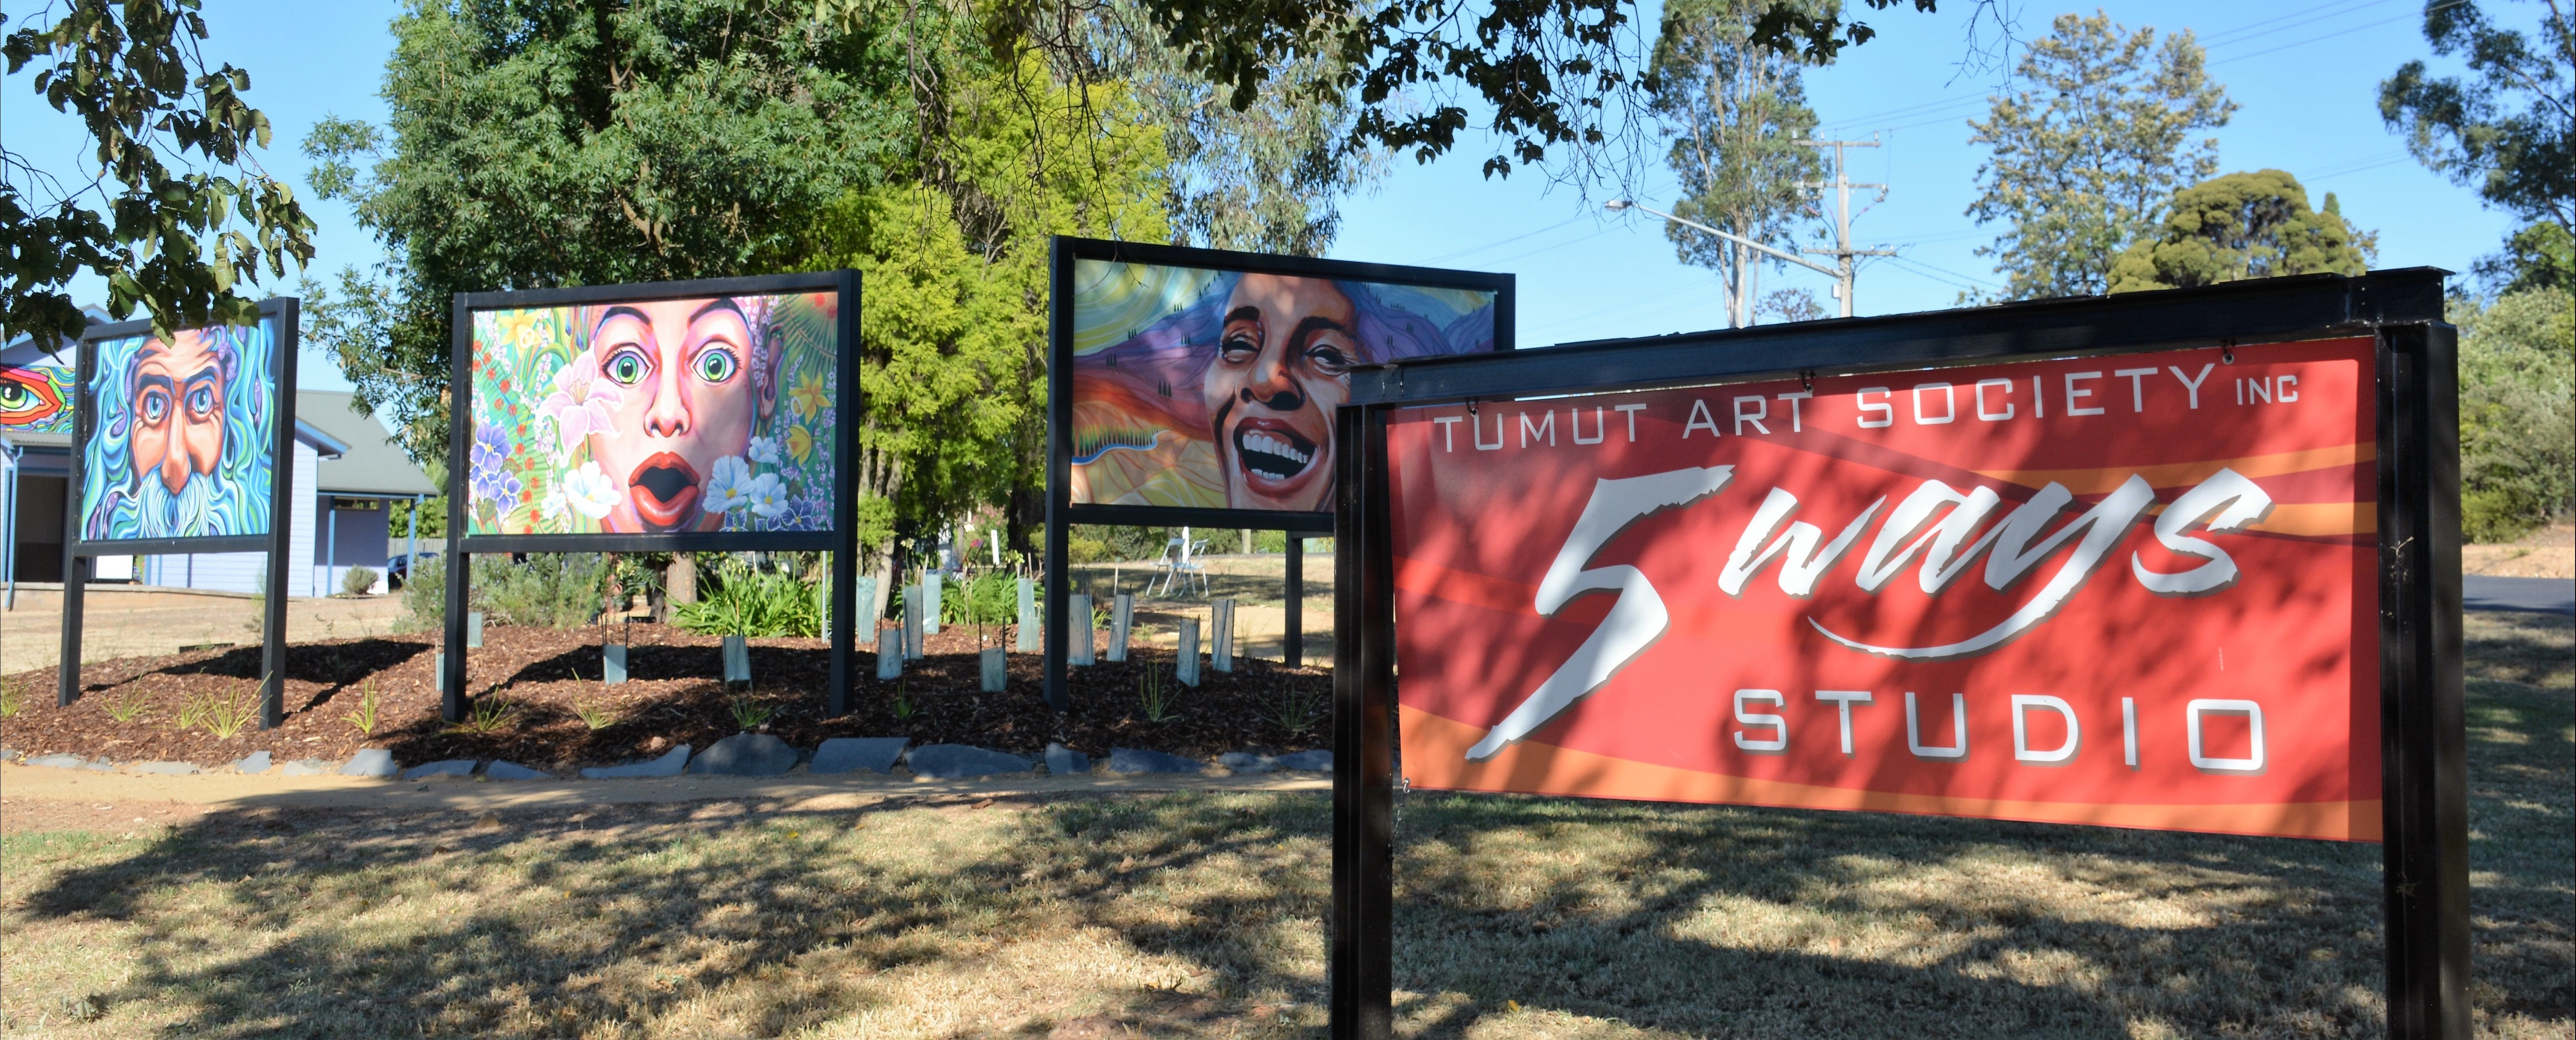 Tumut Art Society 5Ways Gallery - ACT Tourism